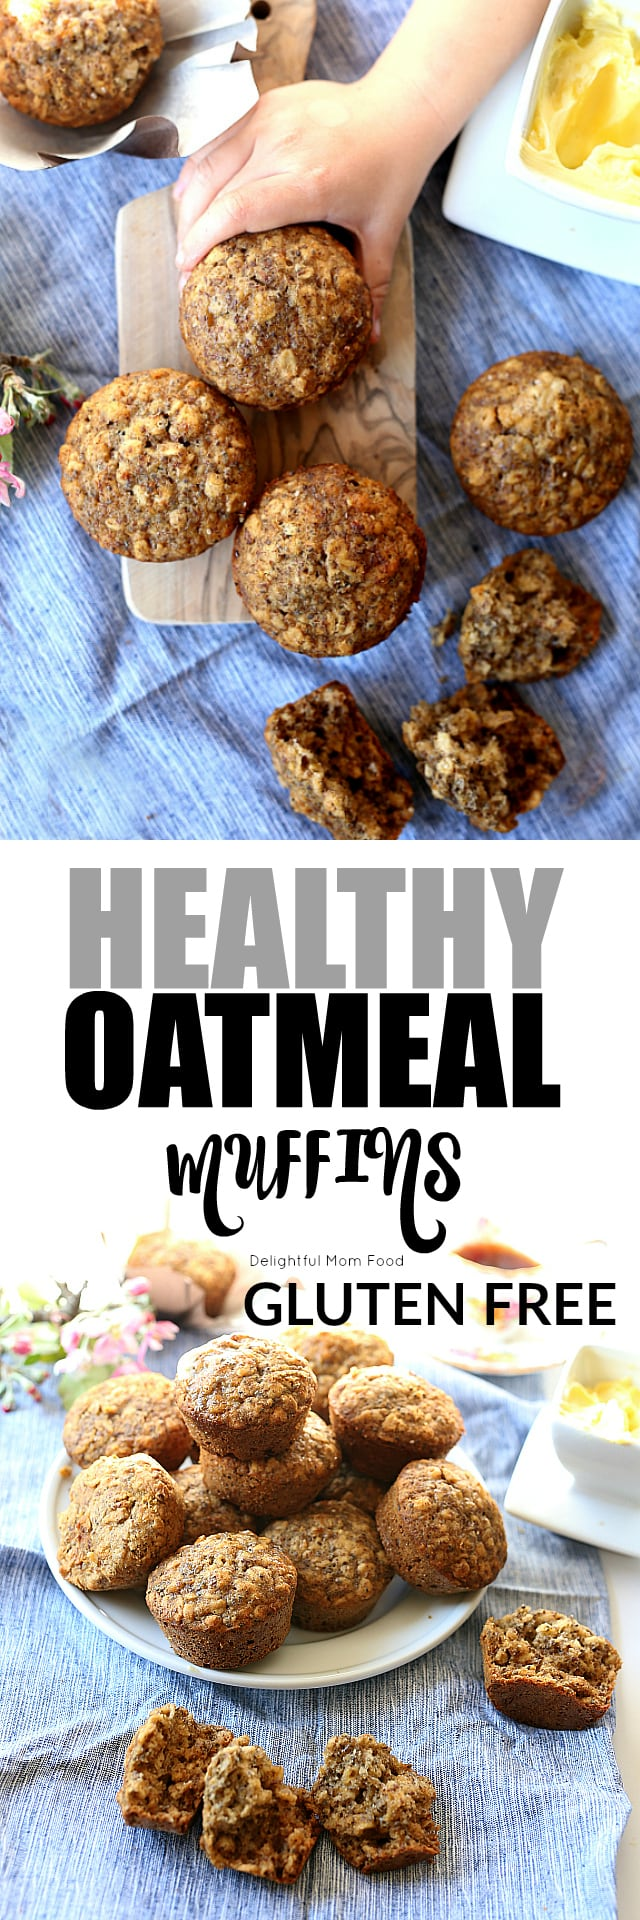 Healthy Gluten Free Oatmeal Muffins! An Oatmeal Bowl baked in a muffin tin!